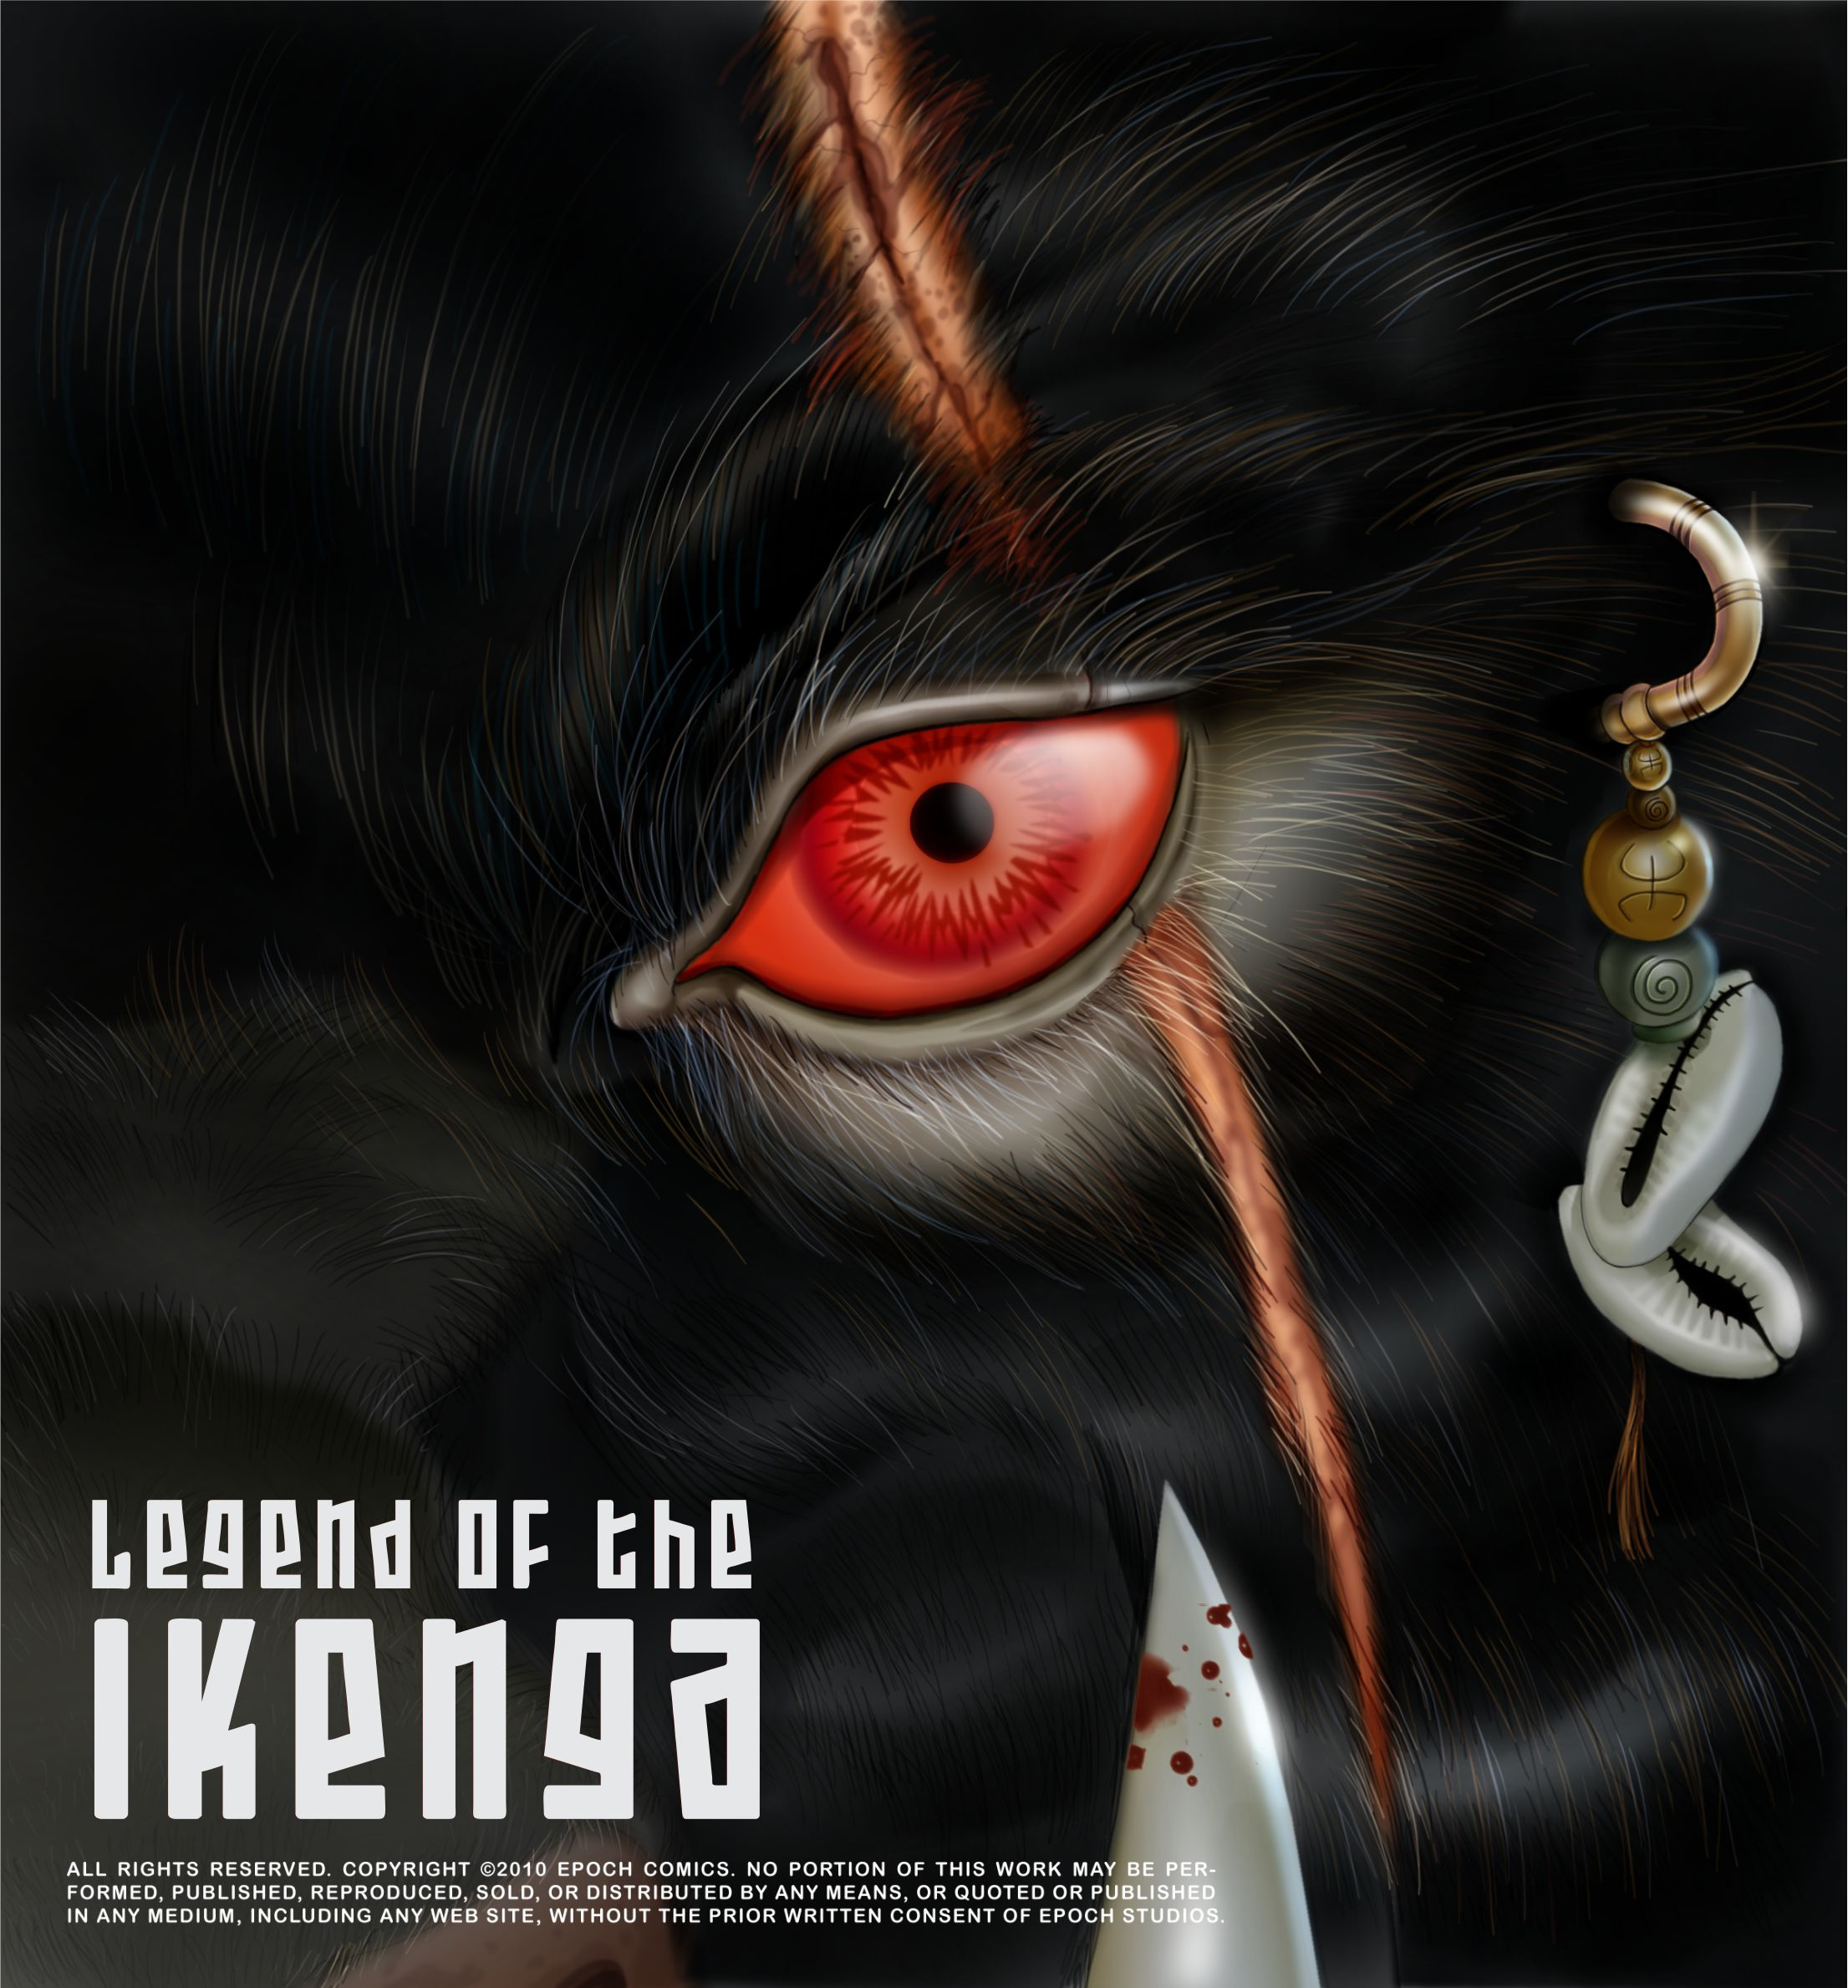 ikenga graphic novel cover art